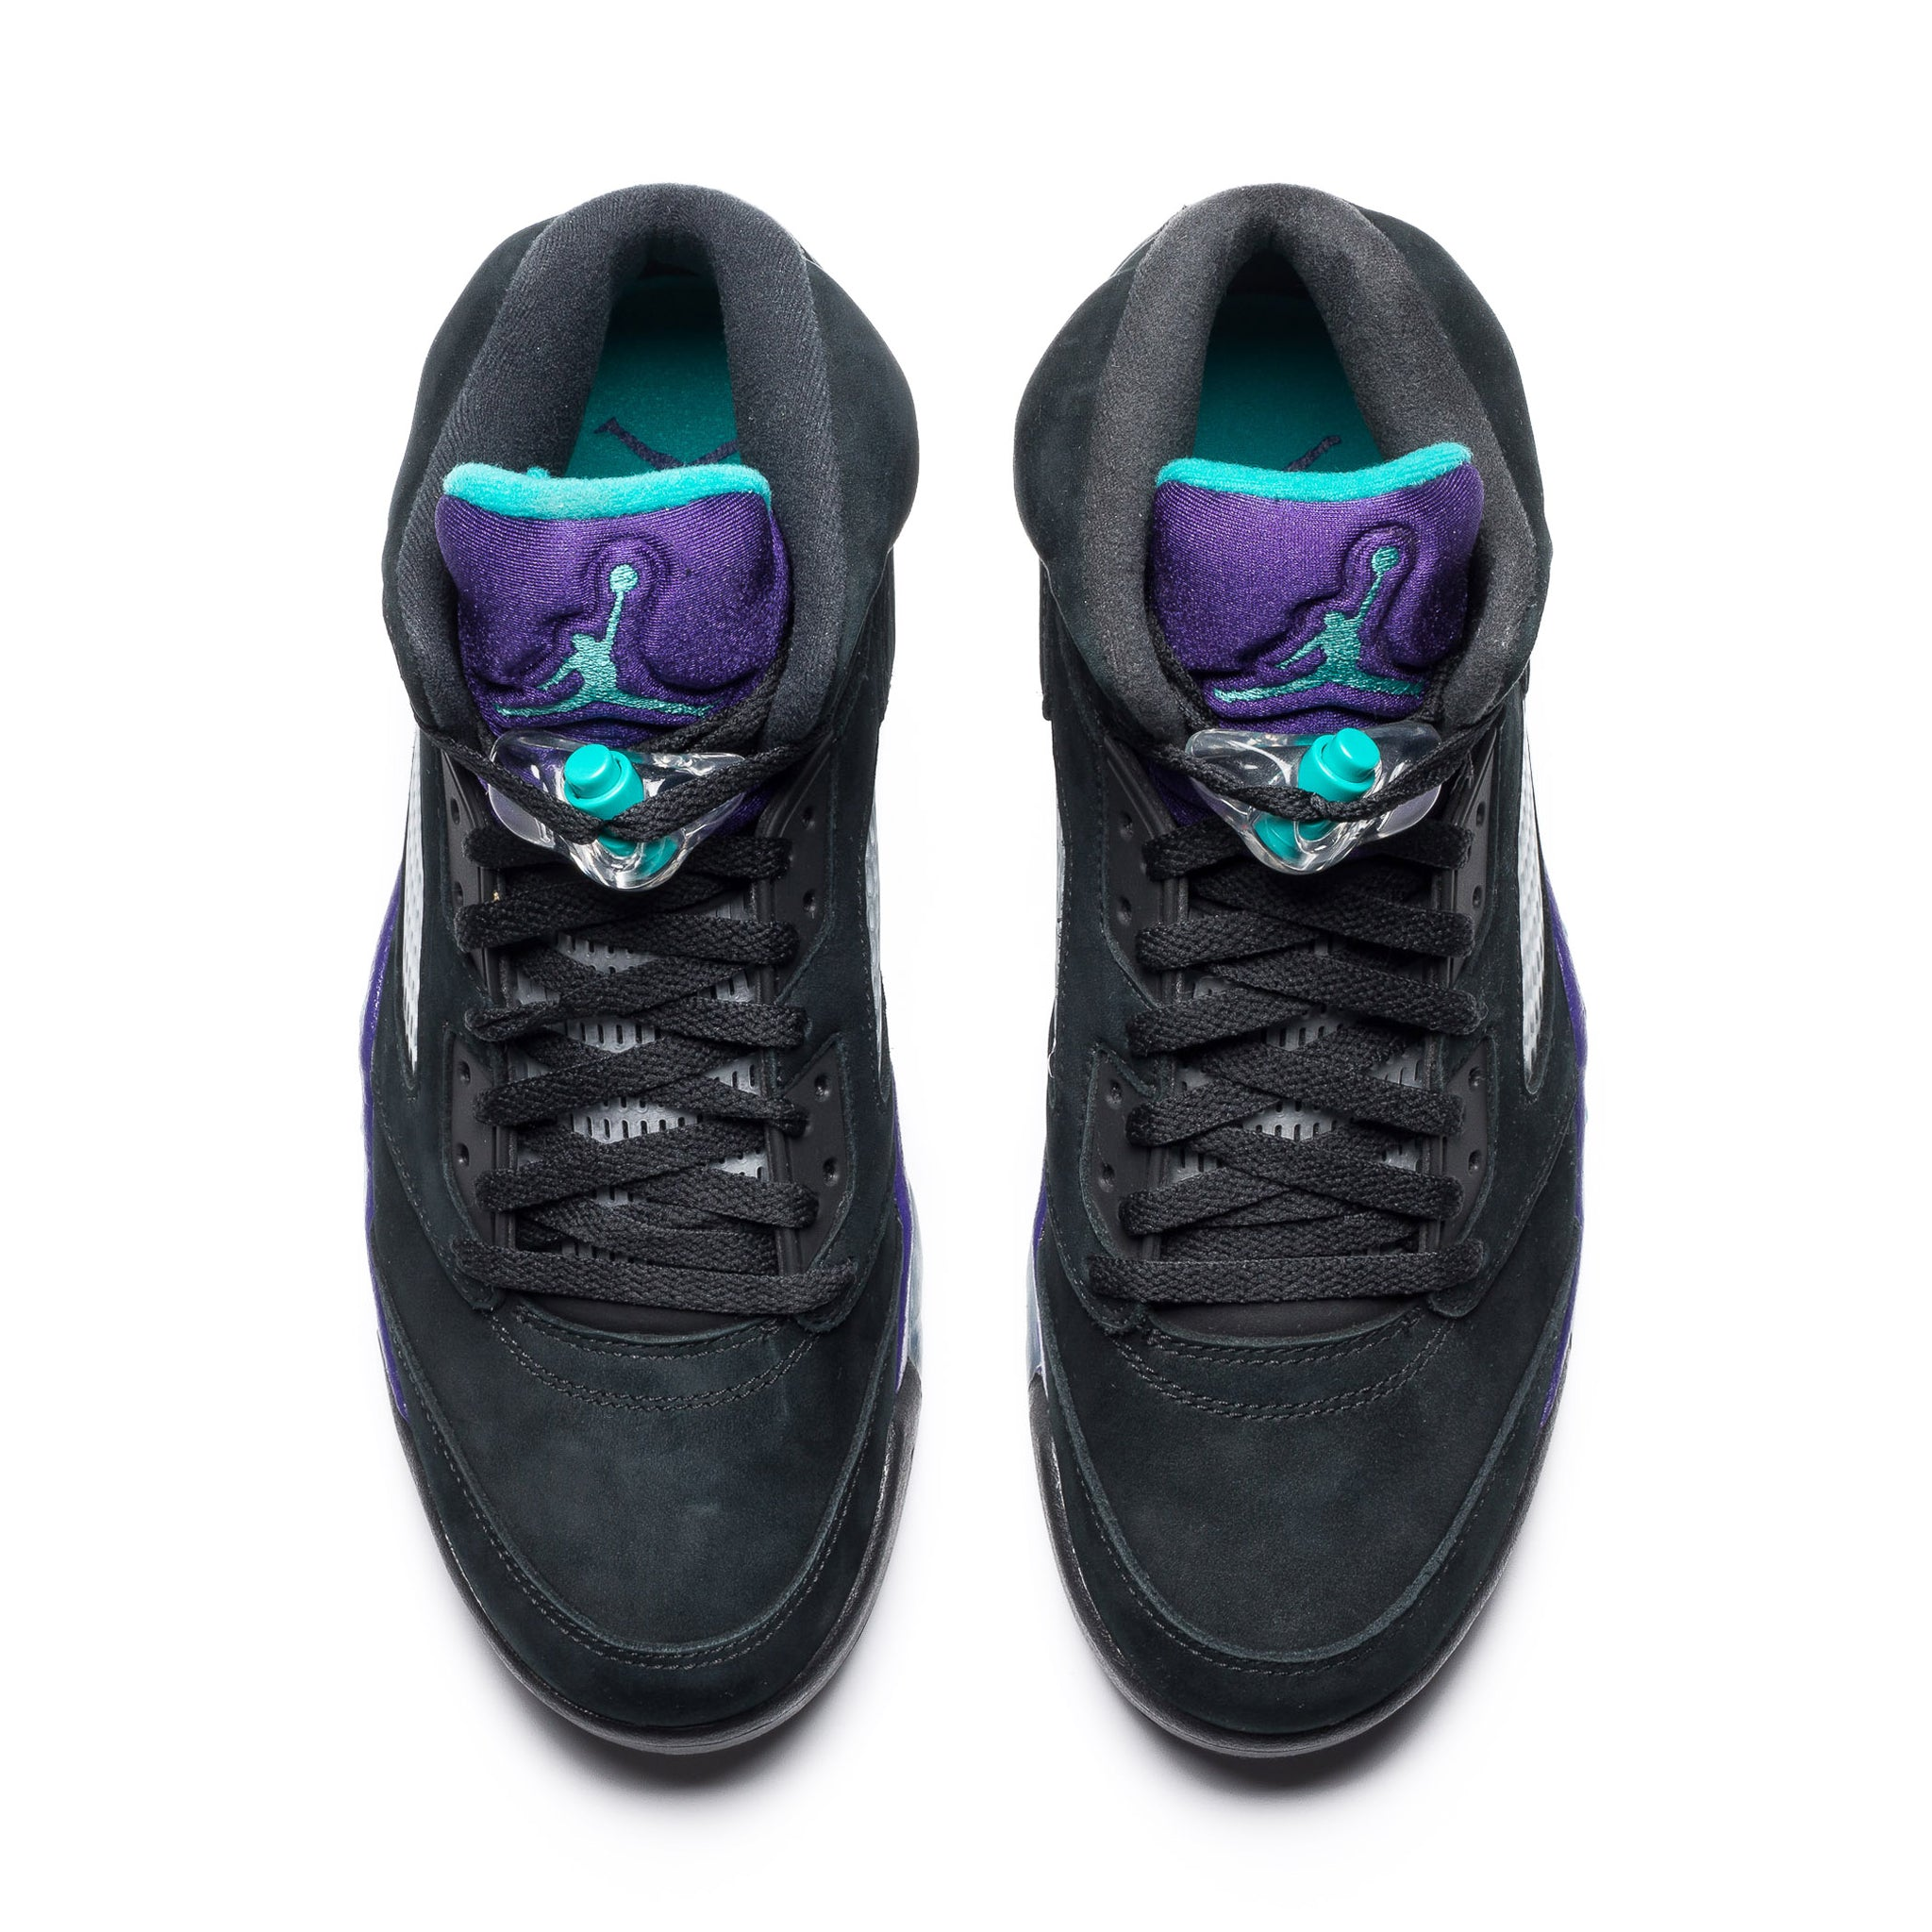 Air Jordan 5 Retro Black Grape (2013) - UnityWorldWild